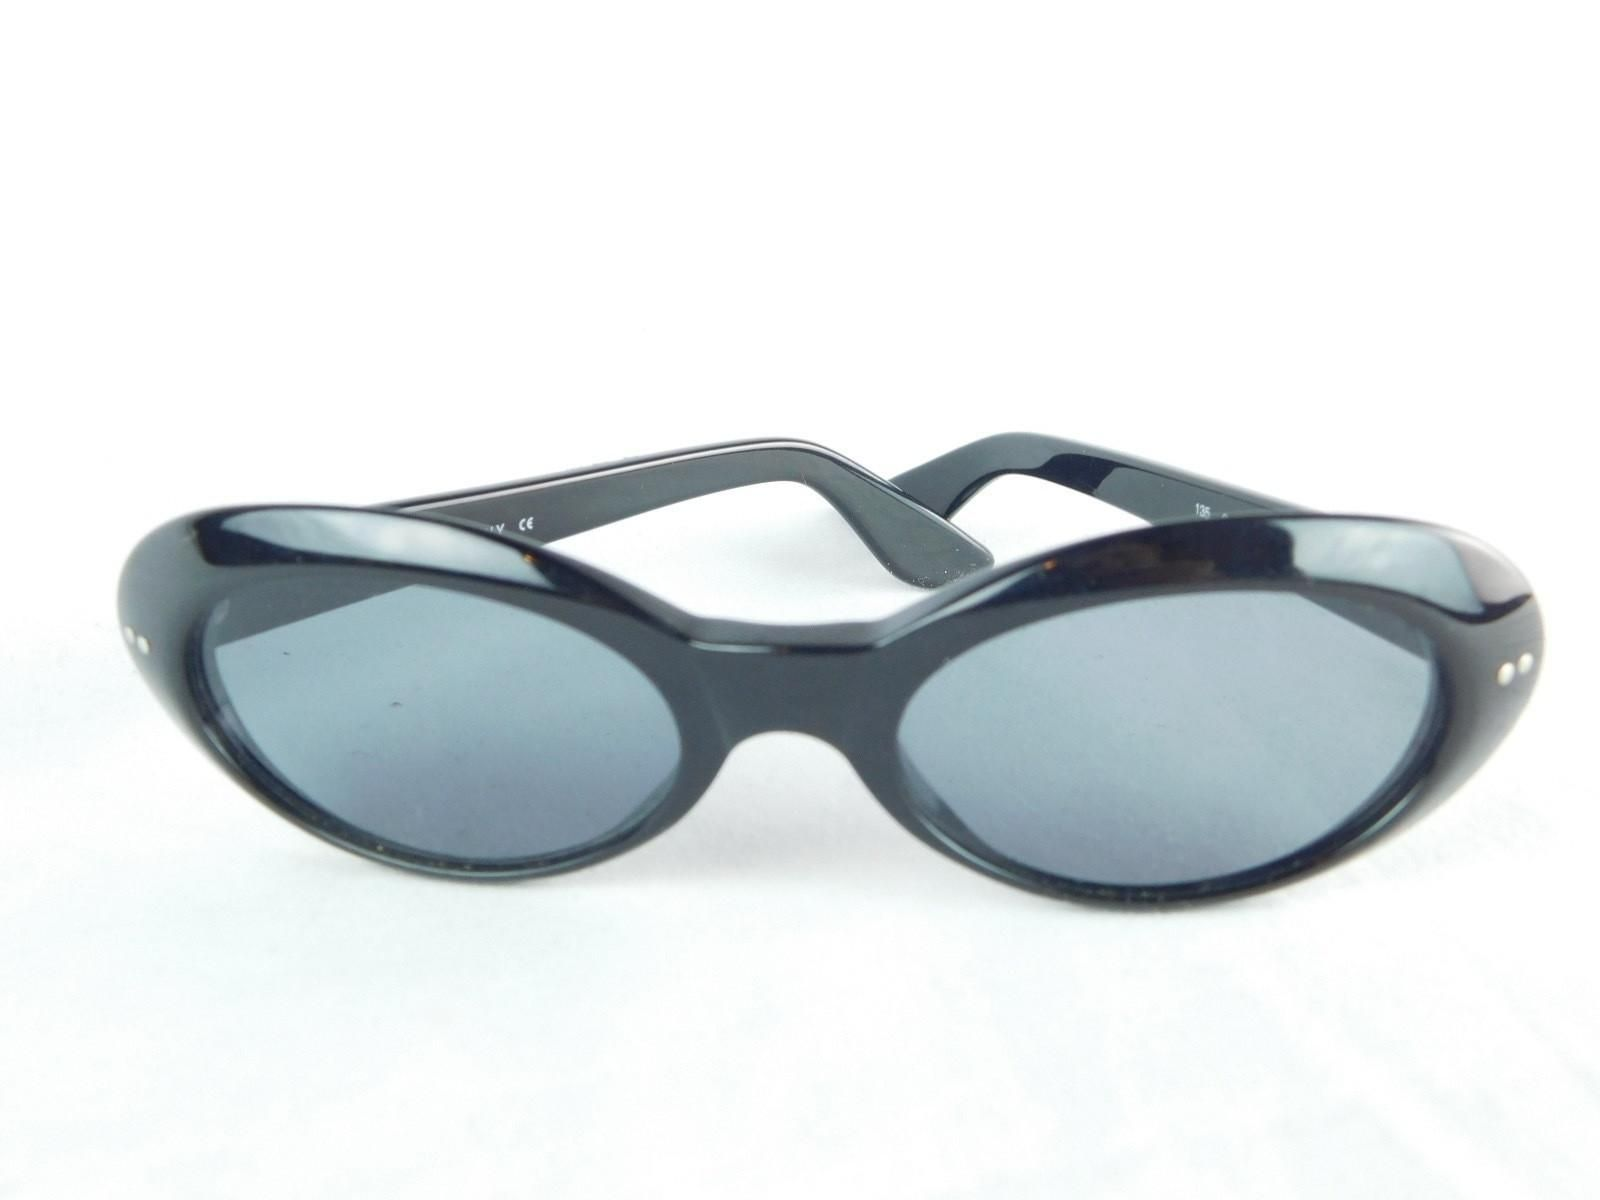 ae06d1629c Gucci Oval Black CatEye Sunglasses. Free shipping and guaranteed  authenticity on Gucci Oval Black CatEye